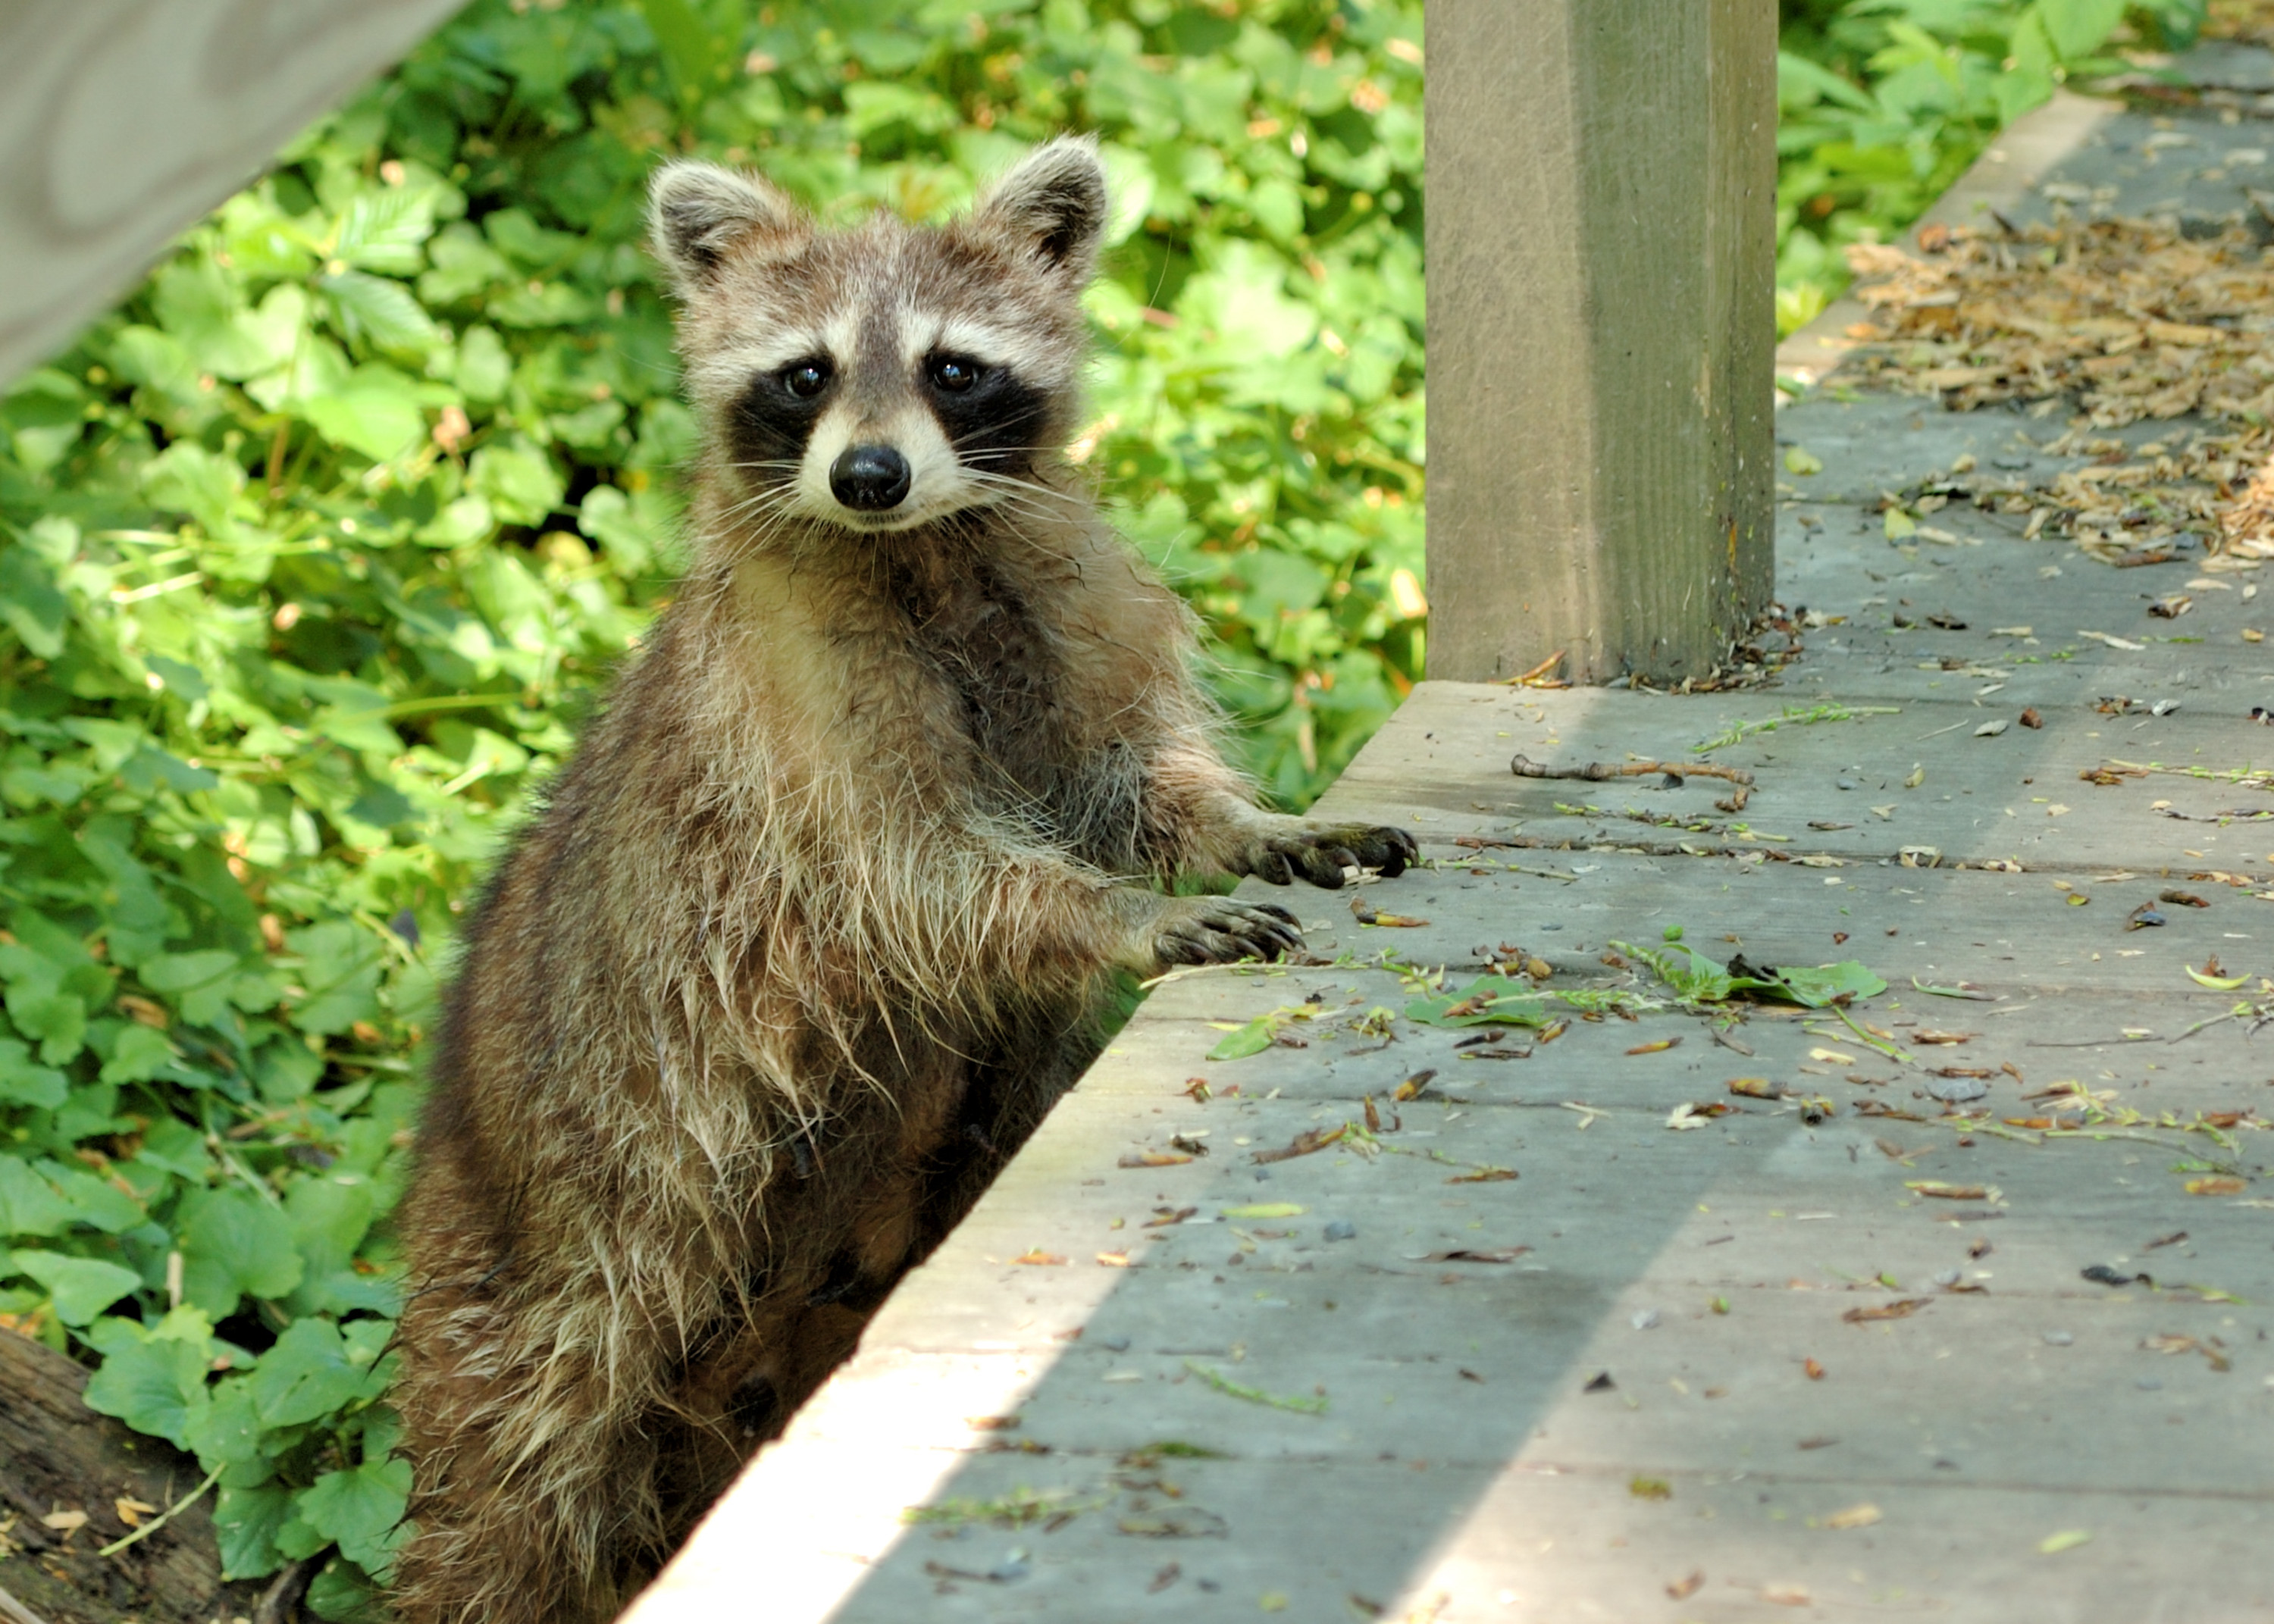 Image of: Bat Wildlife Control Technicians Have Trained Professionals In Raccoon Control And Raccoon Removal Throughout Texas Including Tyler Midland Houston Dallas Daily Journal Raccoon Control Texas Wildlife Control